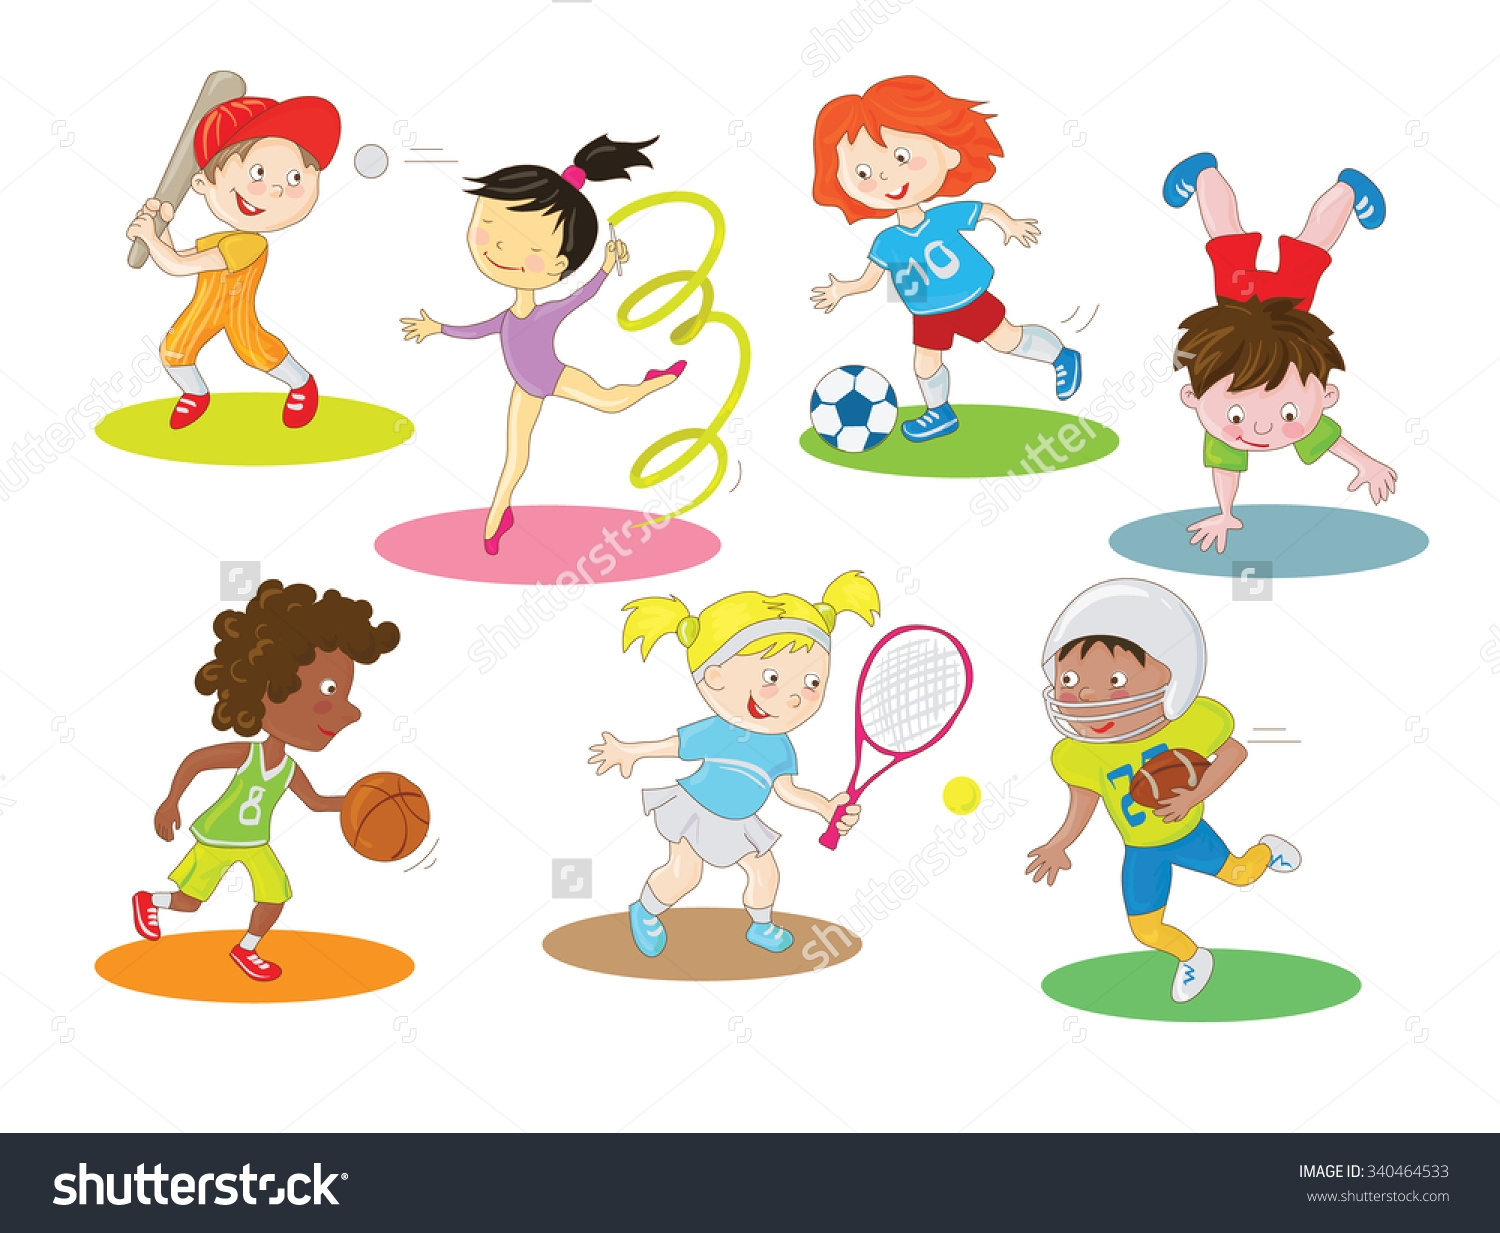 School sports day clip art.